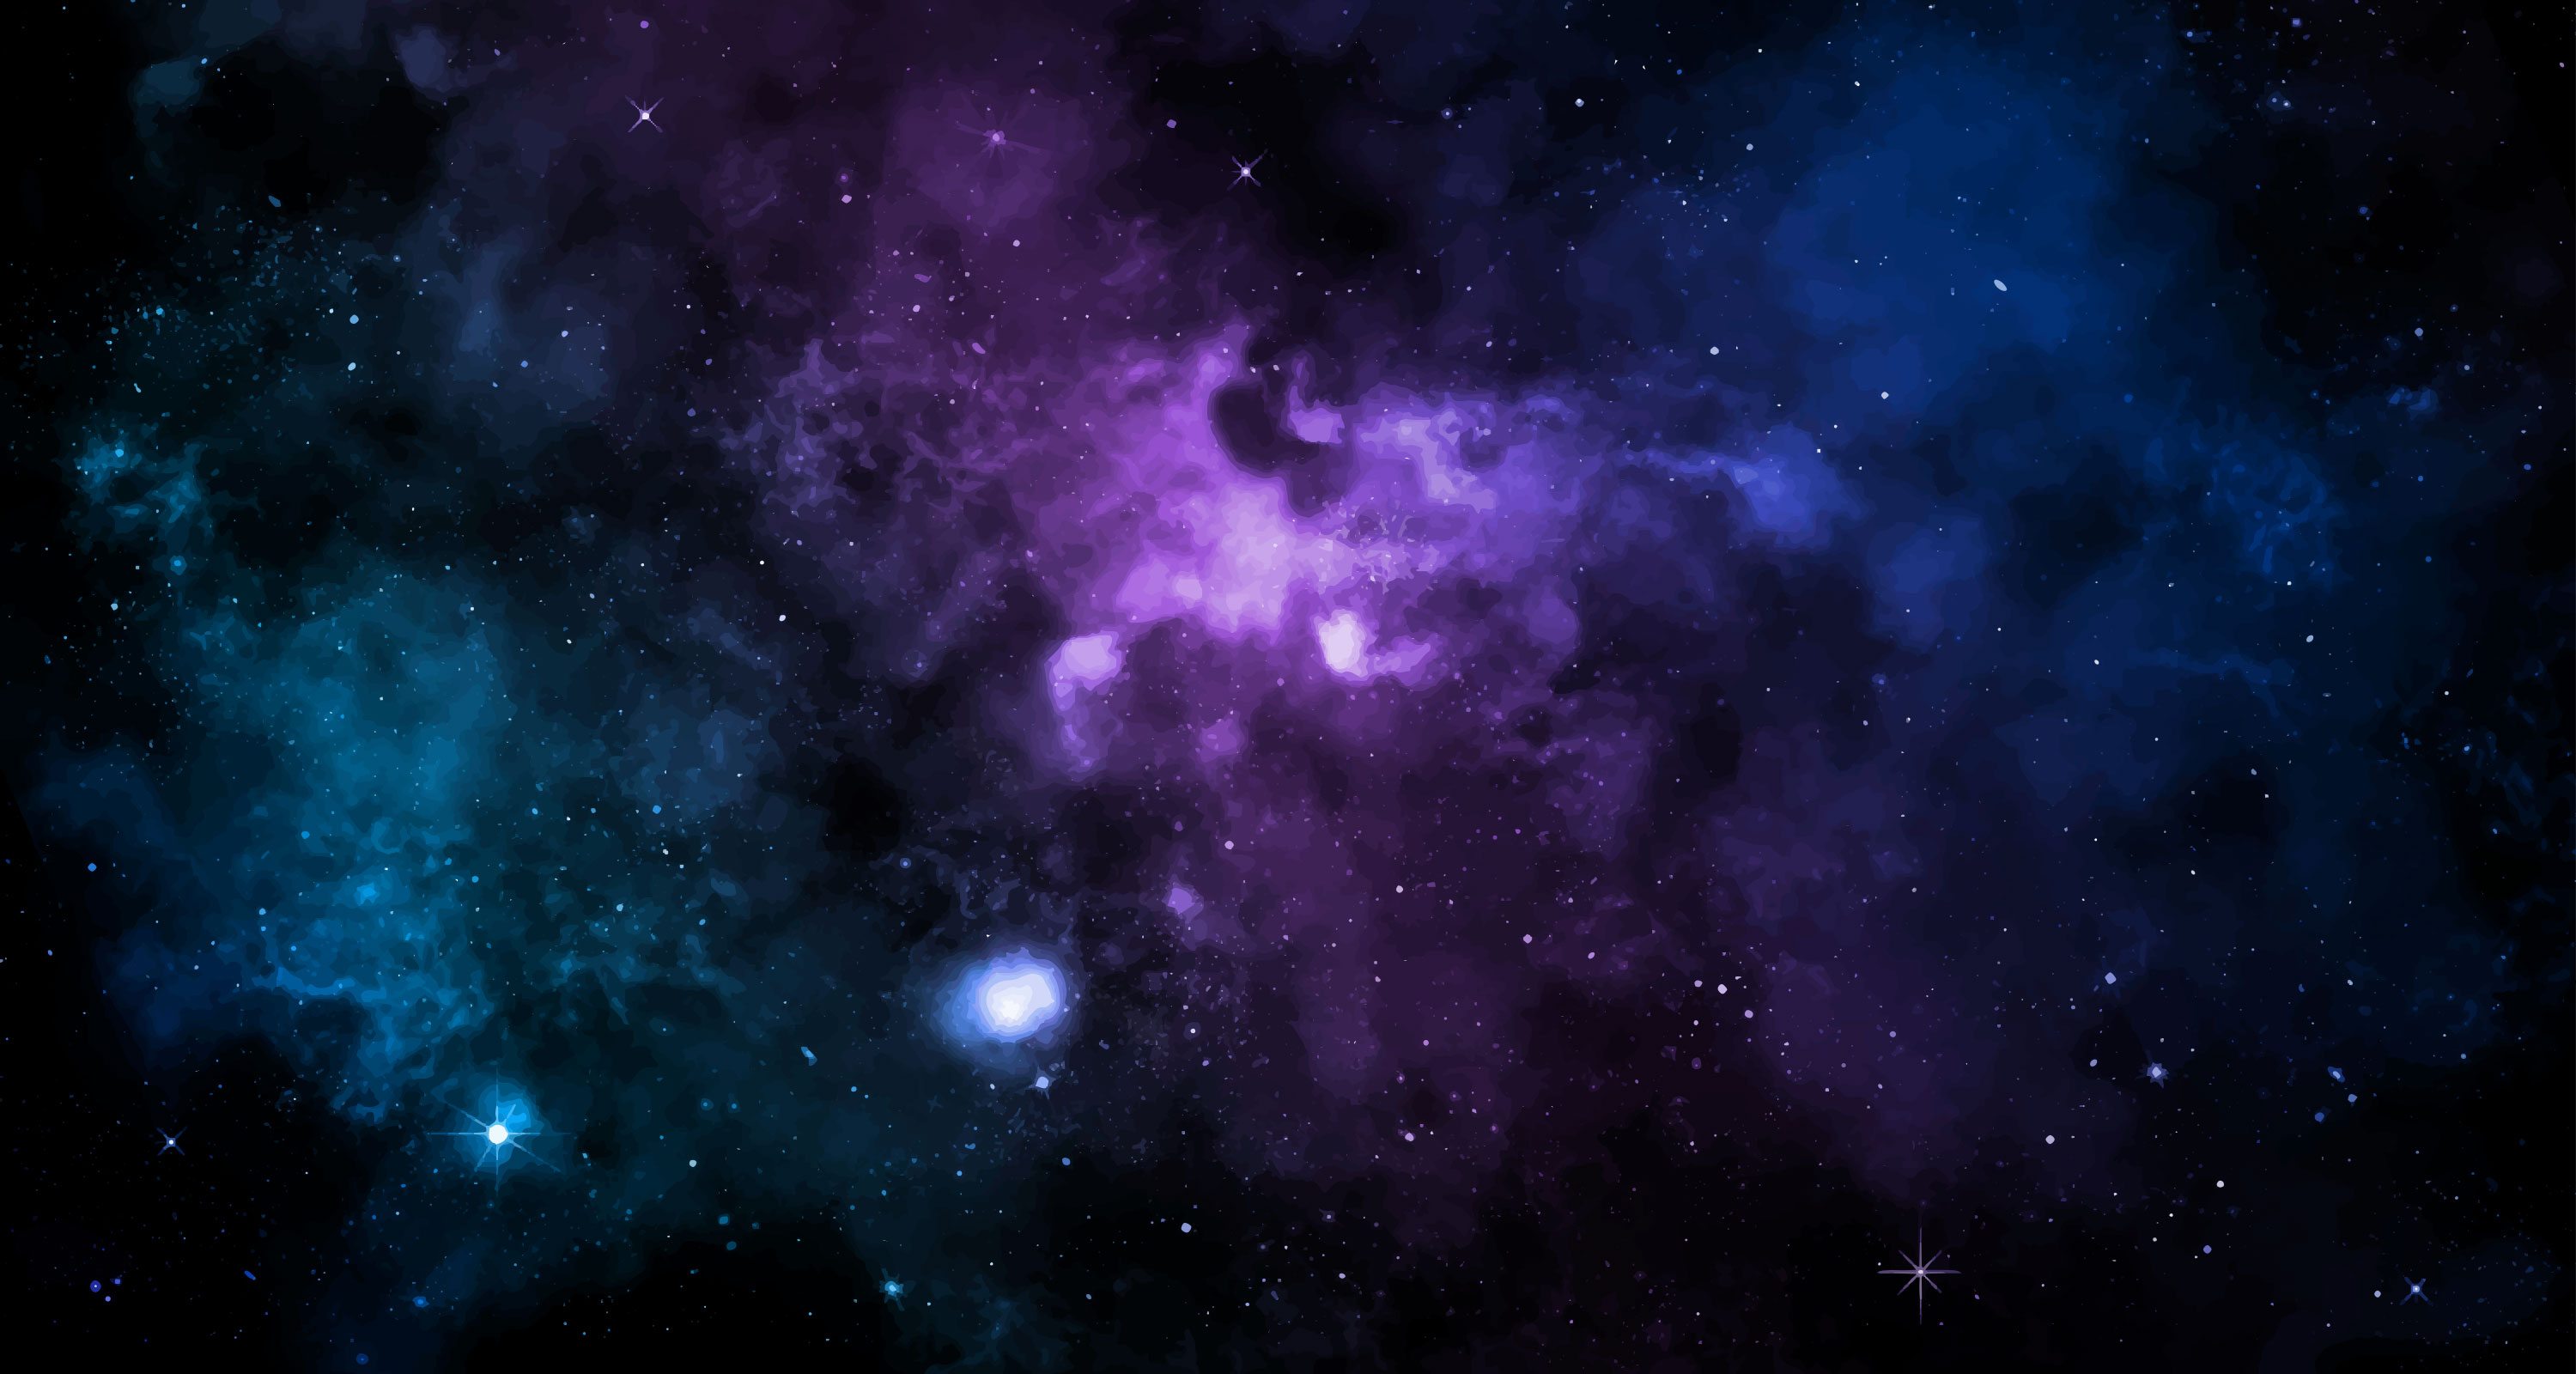 cmd/web-app/static/images/example-image-resize-galaxy-3000x1600.png